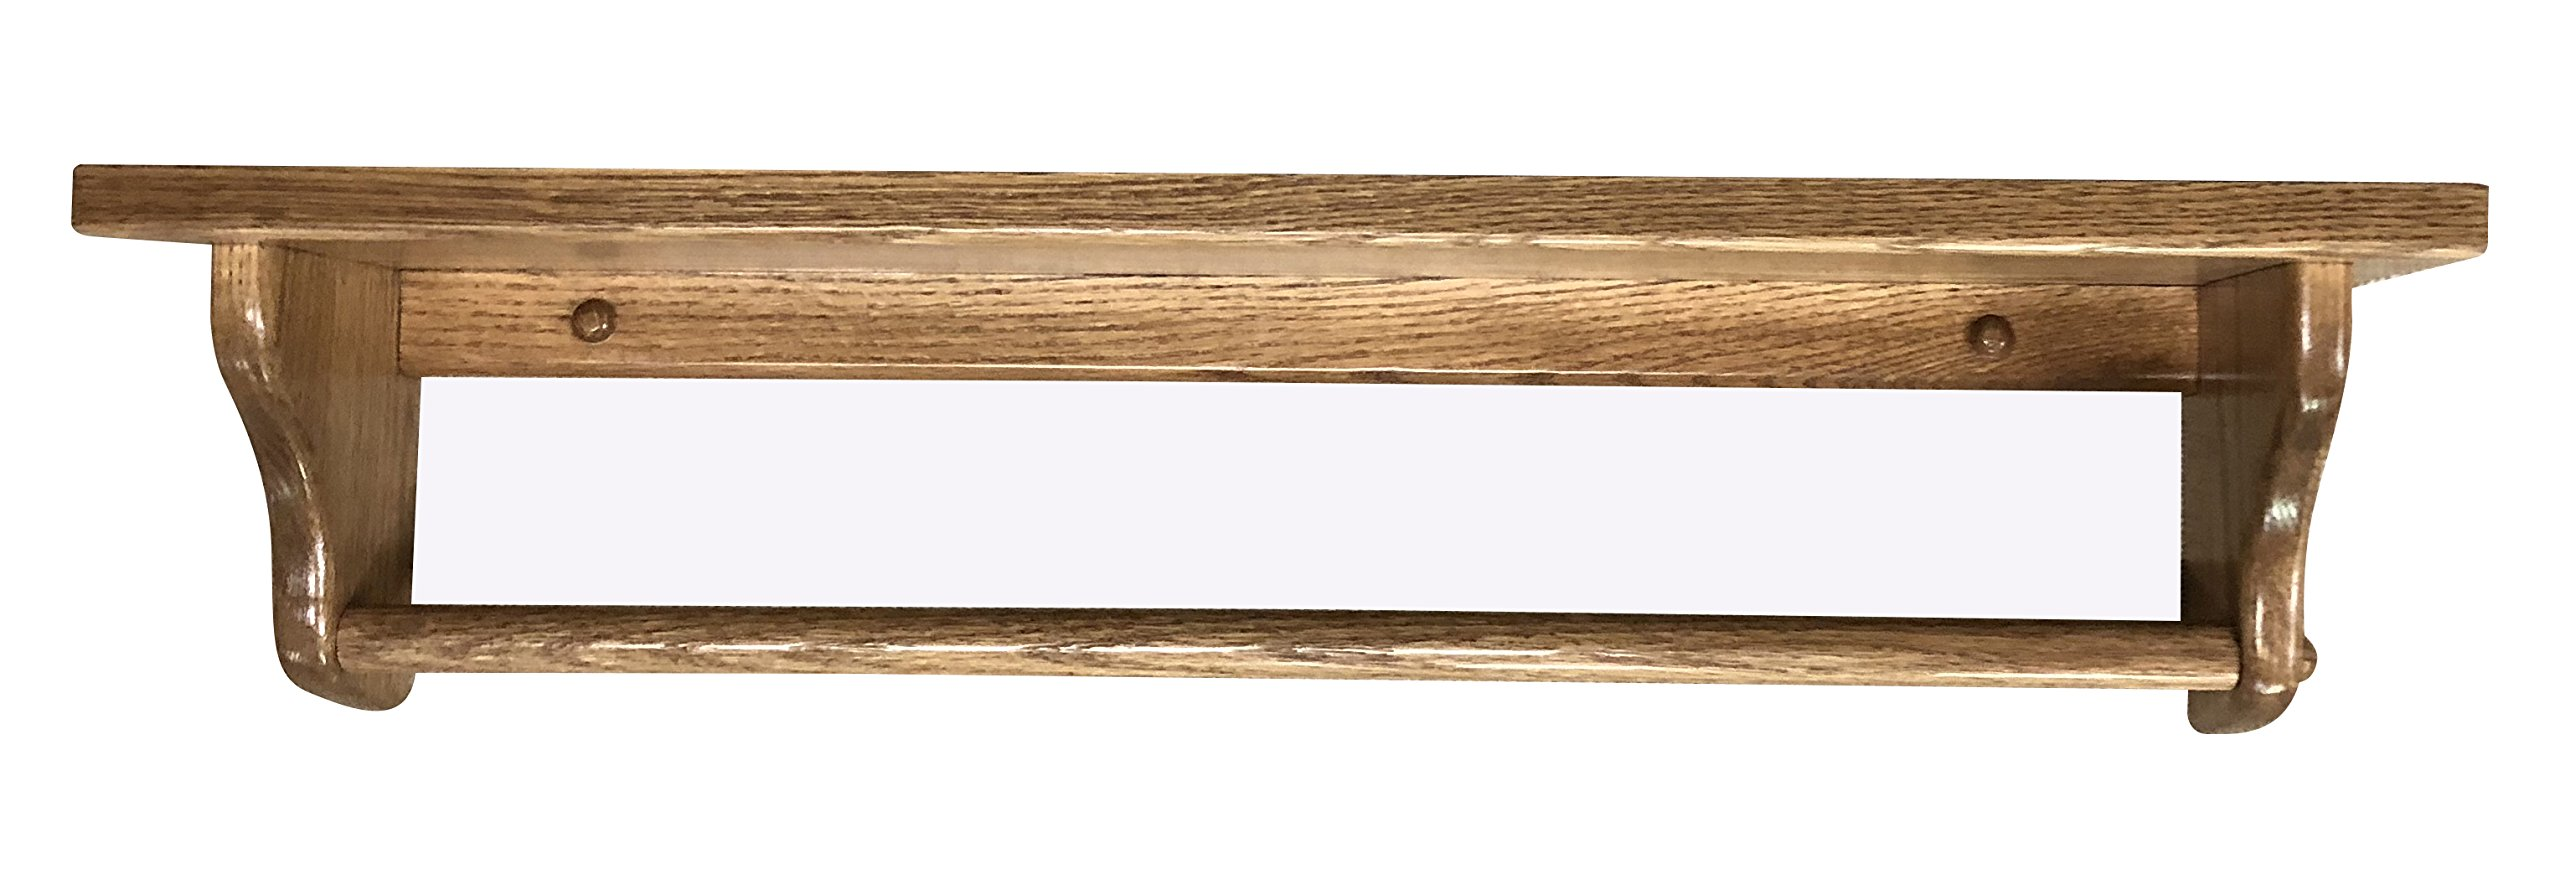 Towel Bar Shelf 18'' Solid Oak Wood - Pick Your Own Stain